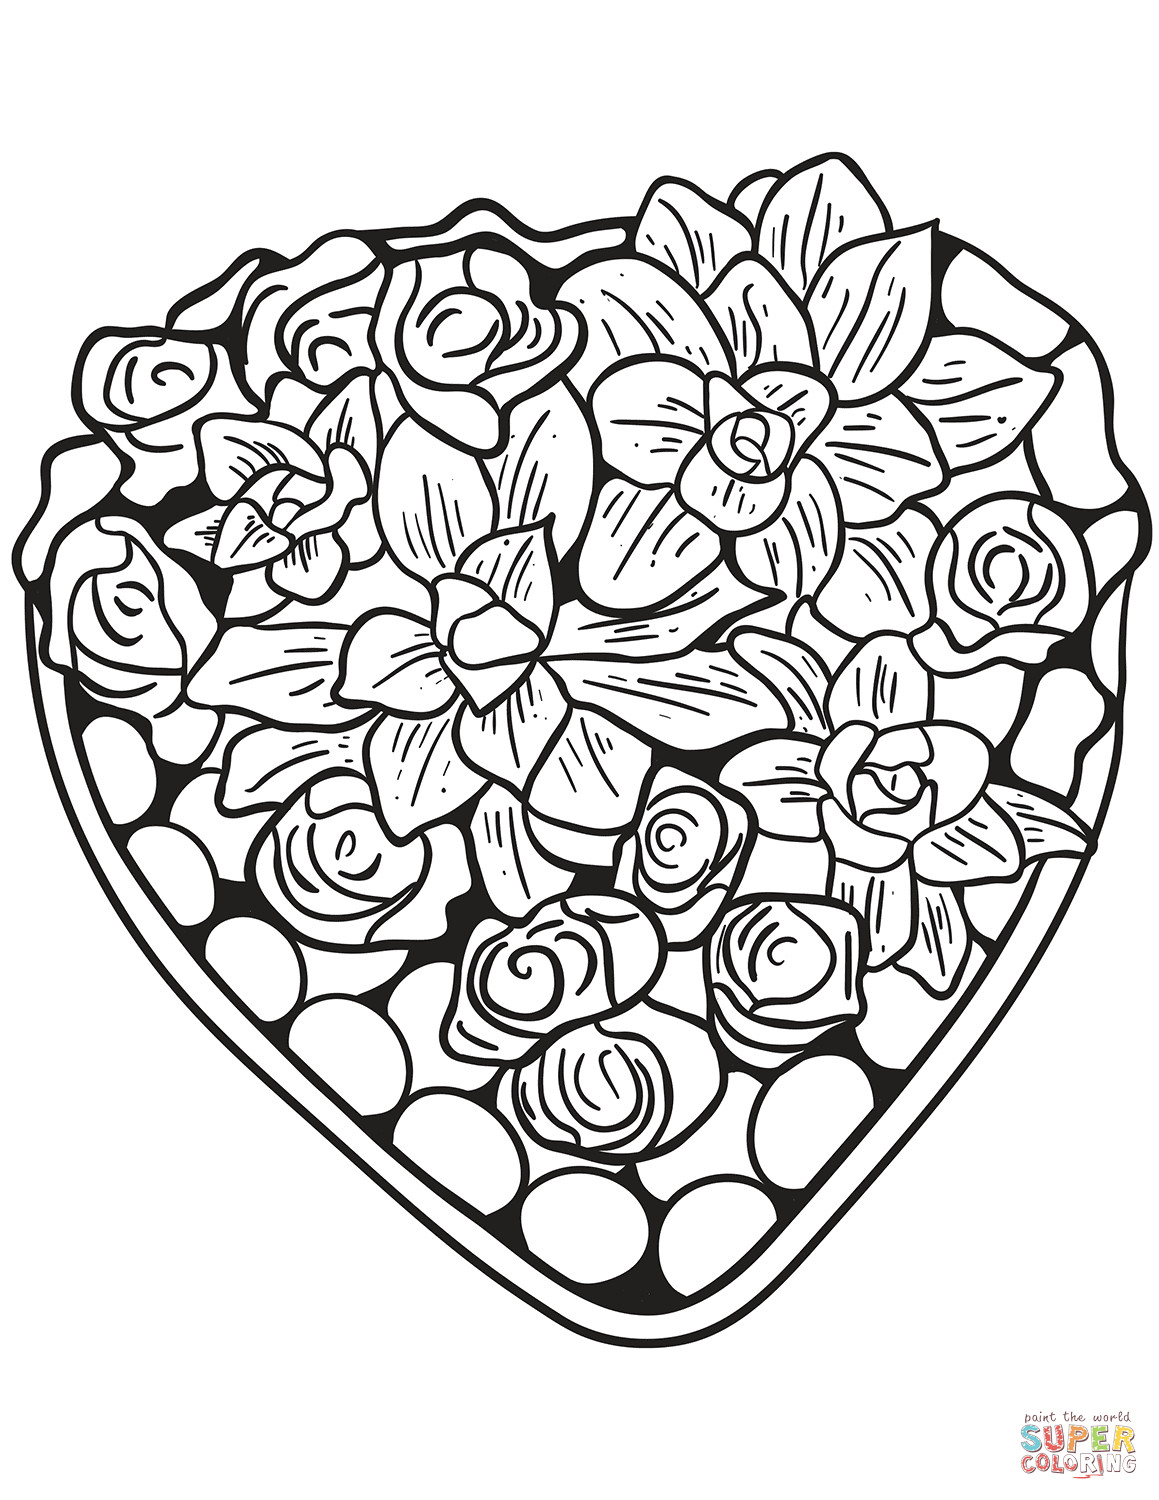 Best ideas about Artful Flower Heart Coloring Sheets For Girls Flowers . Save or Pin Heart Made of Flowers coloring page Now.